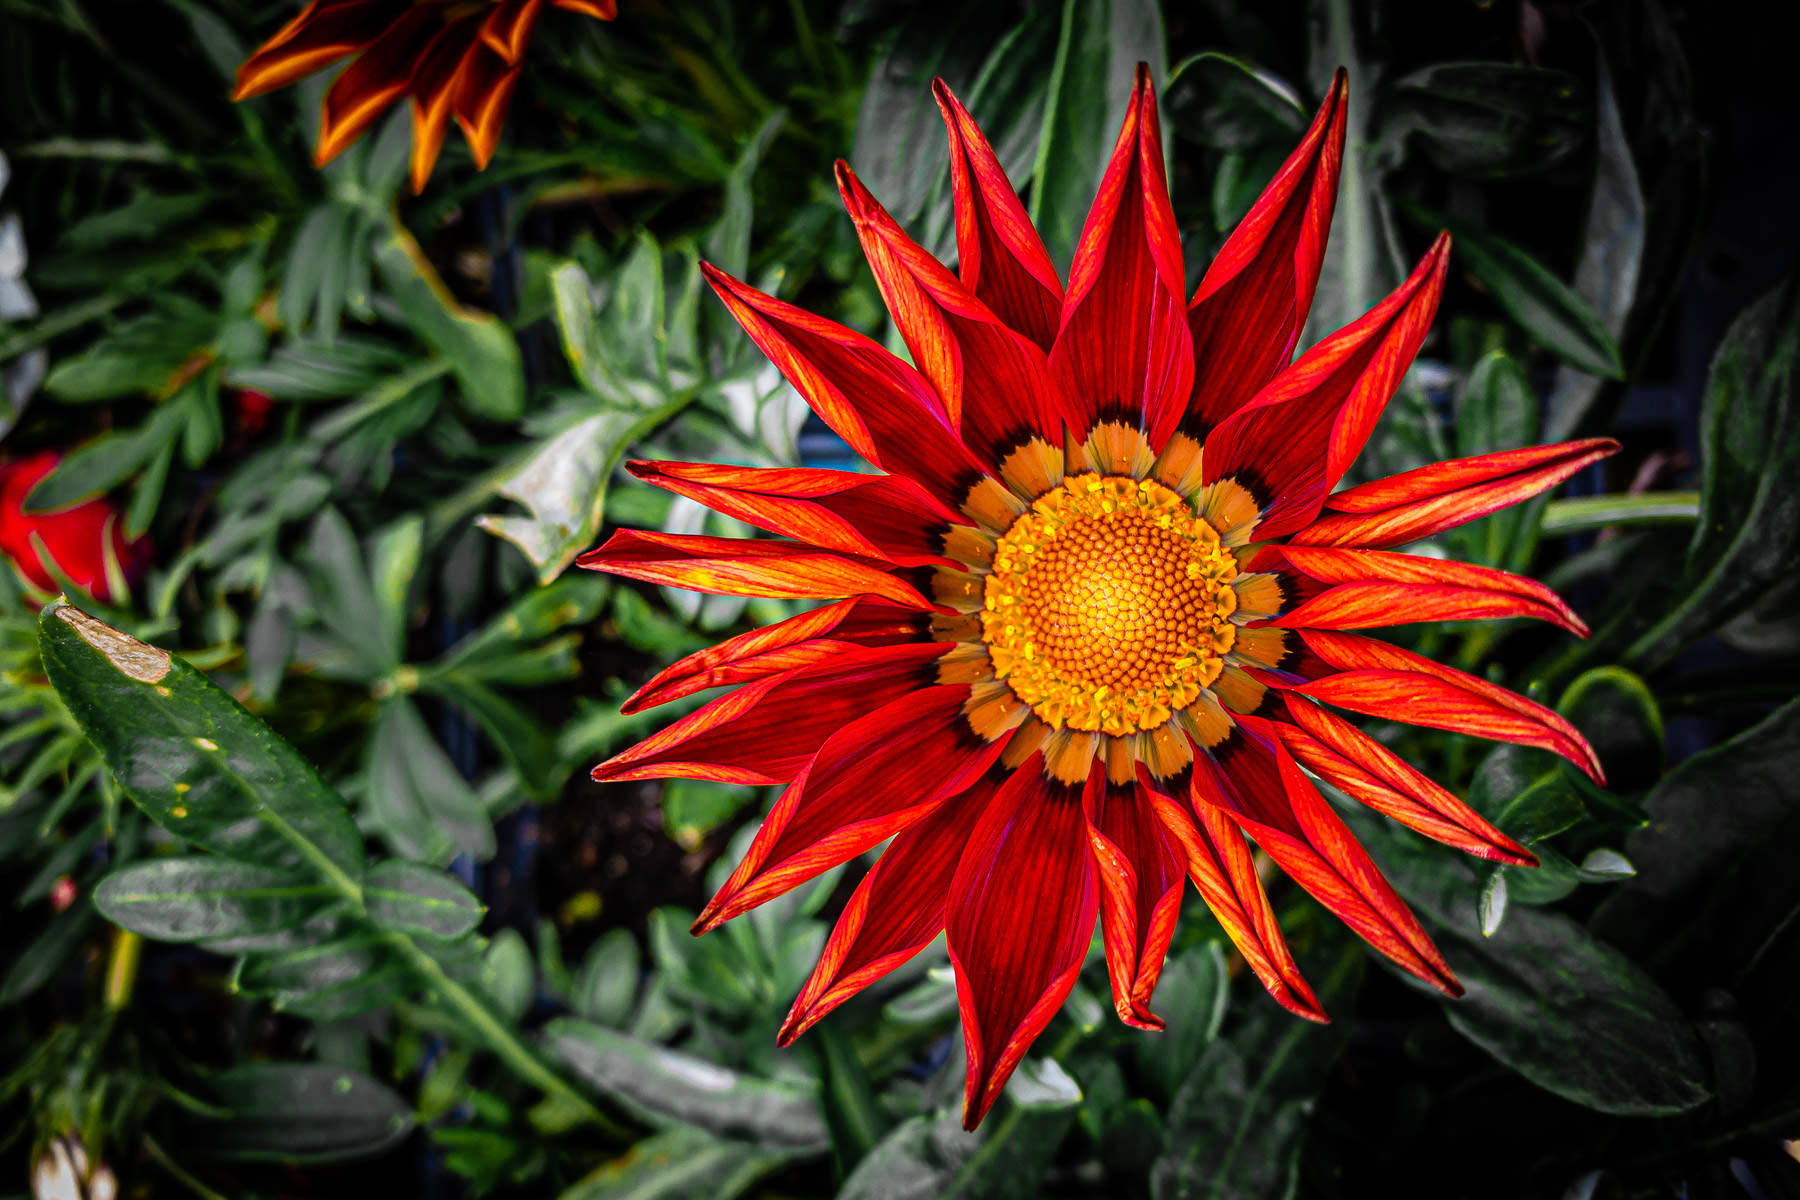 A gazania flower spotted at a North Texas plant farm.